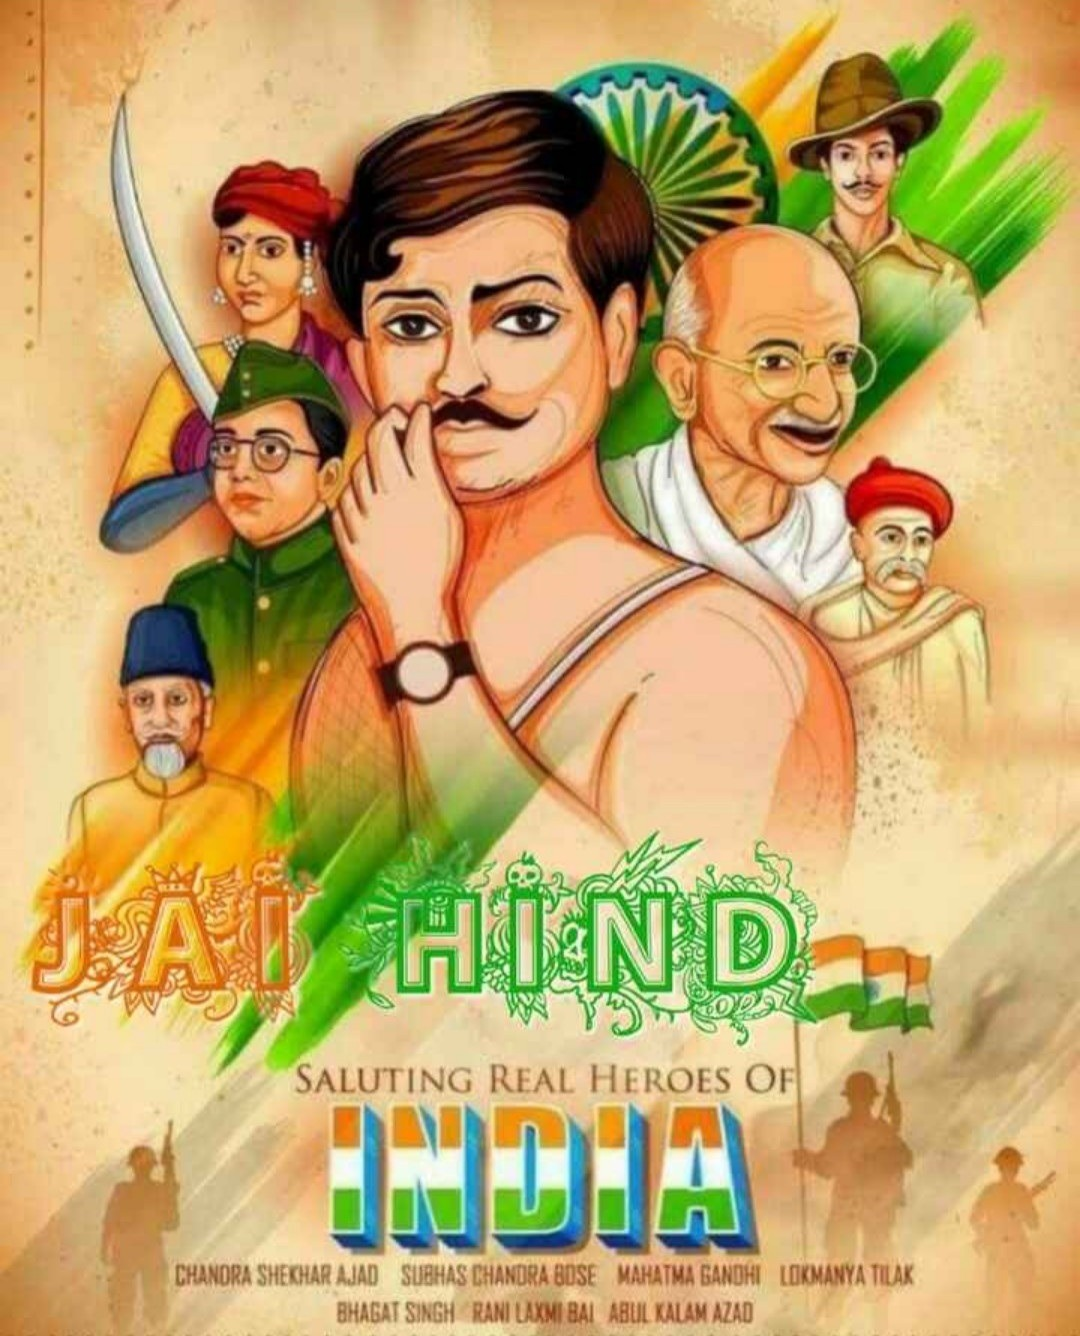 Indian Freedom Fighters Images Download 2019 1080x1336